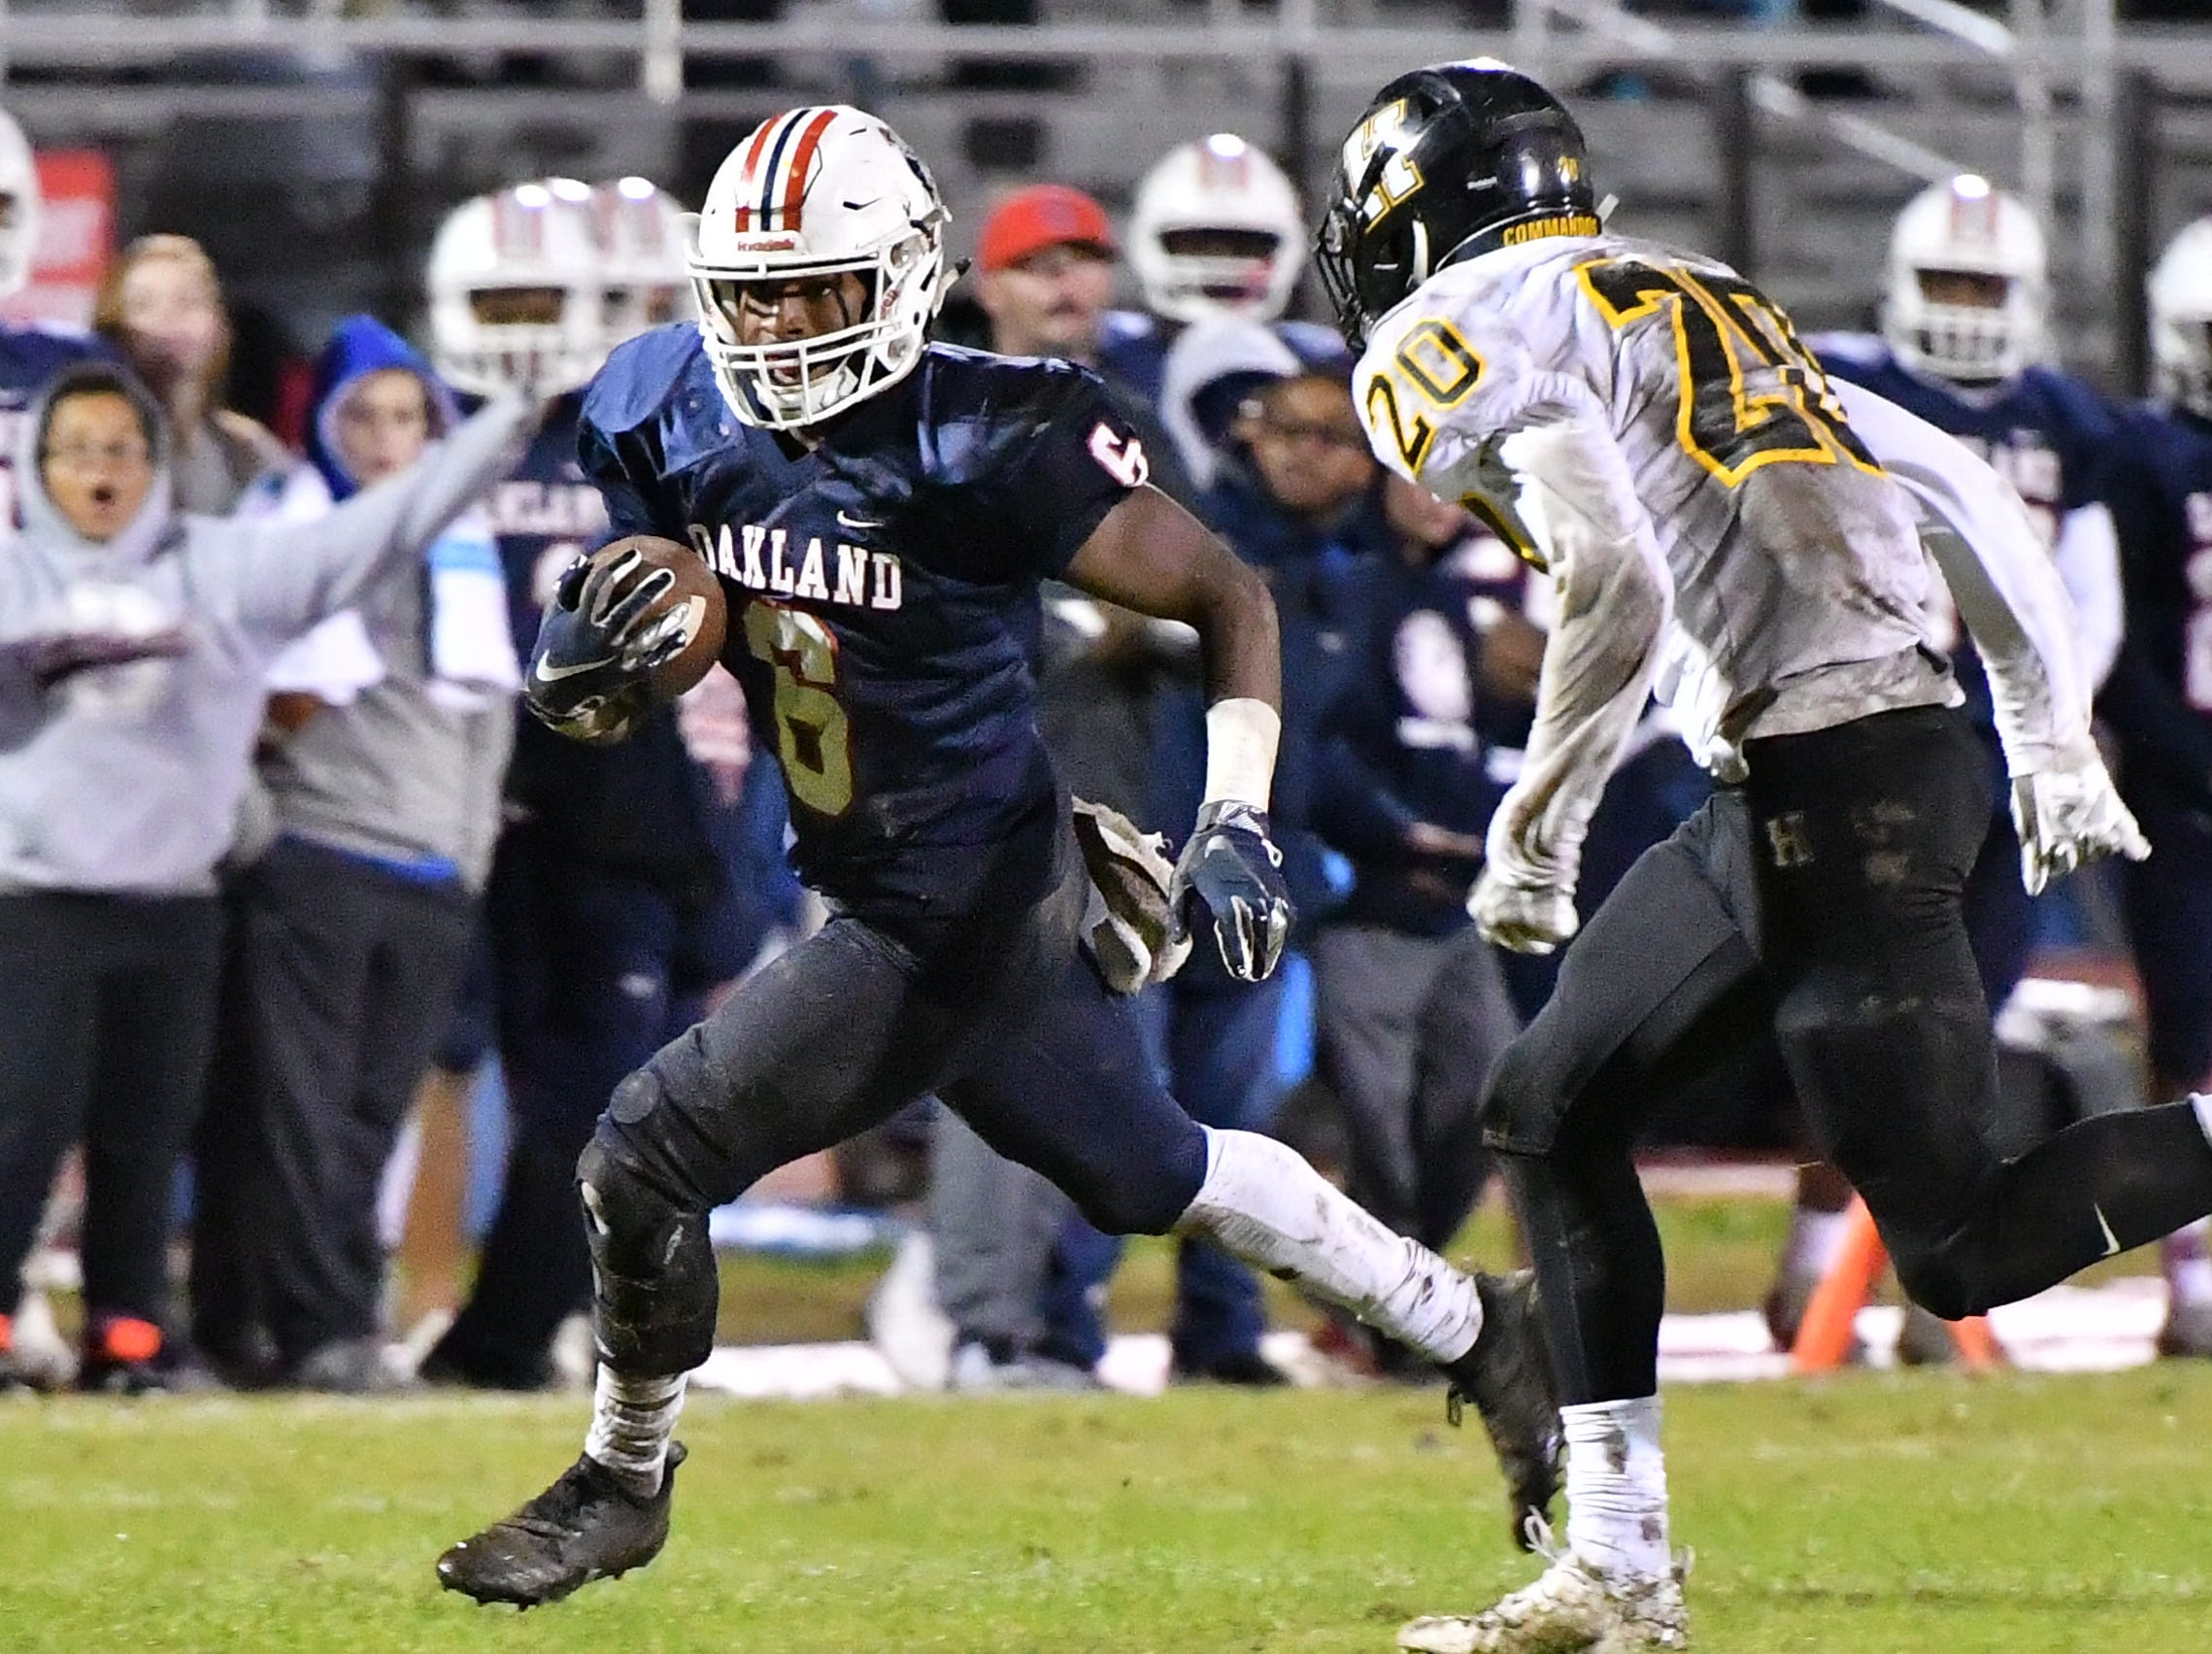 Oakland's Justin Jefferson runs downfield after a pass reception against Hendersonville Friday night.